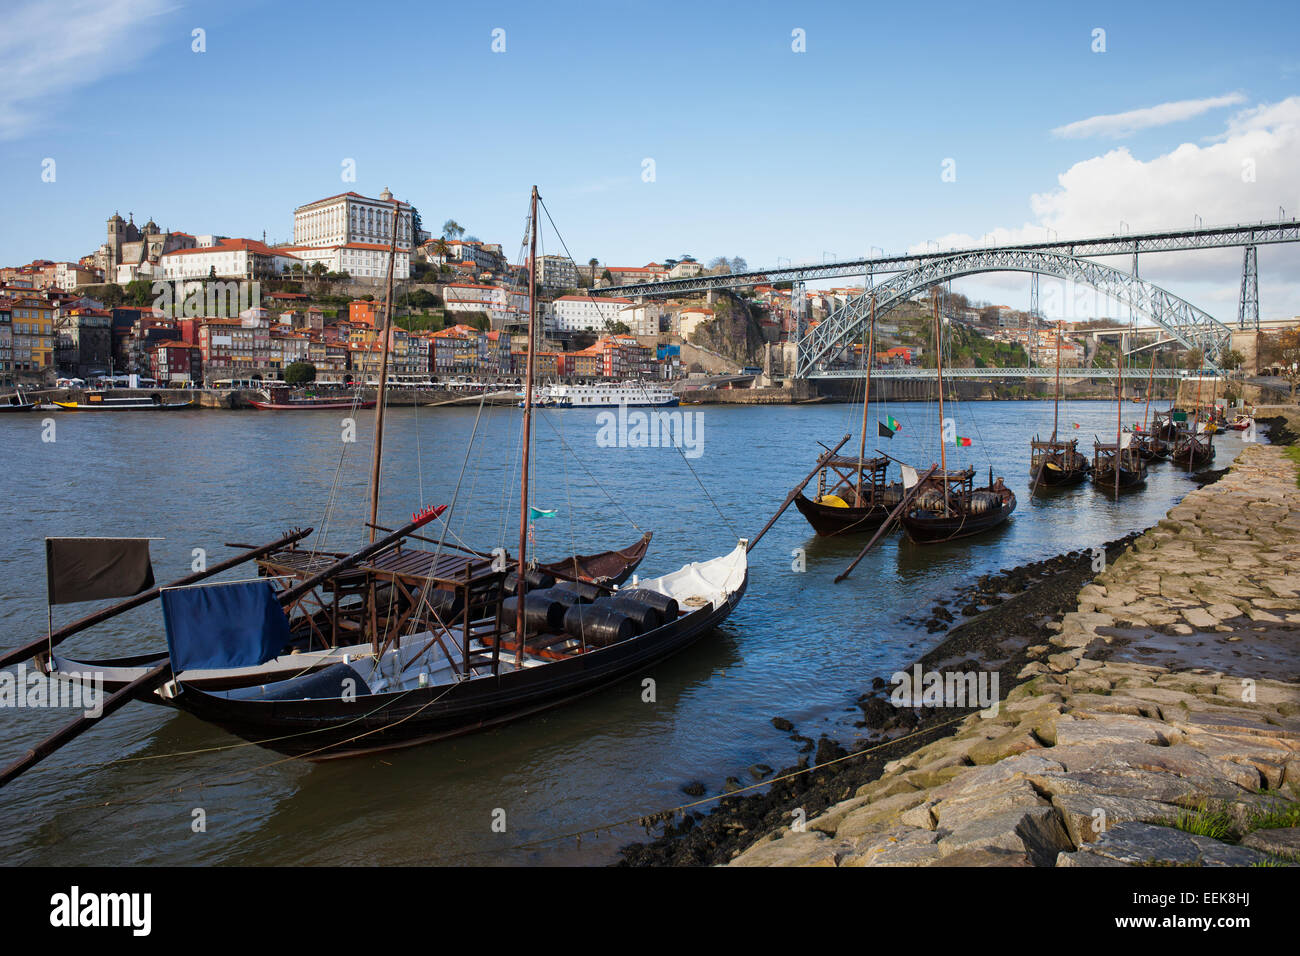 Rabelo traditional boats on Douro river, Dom Luis I Bridge and old city of Porto in Portugal. Stock Photo